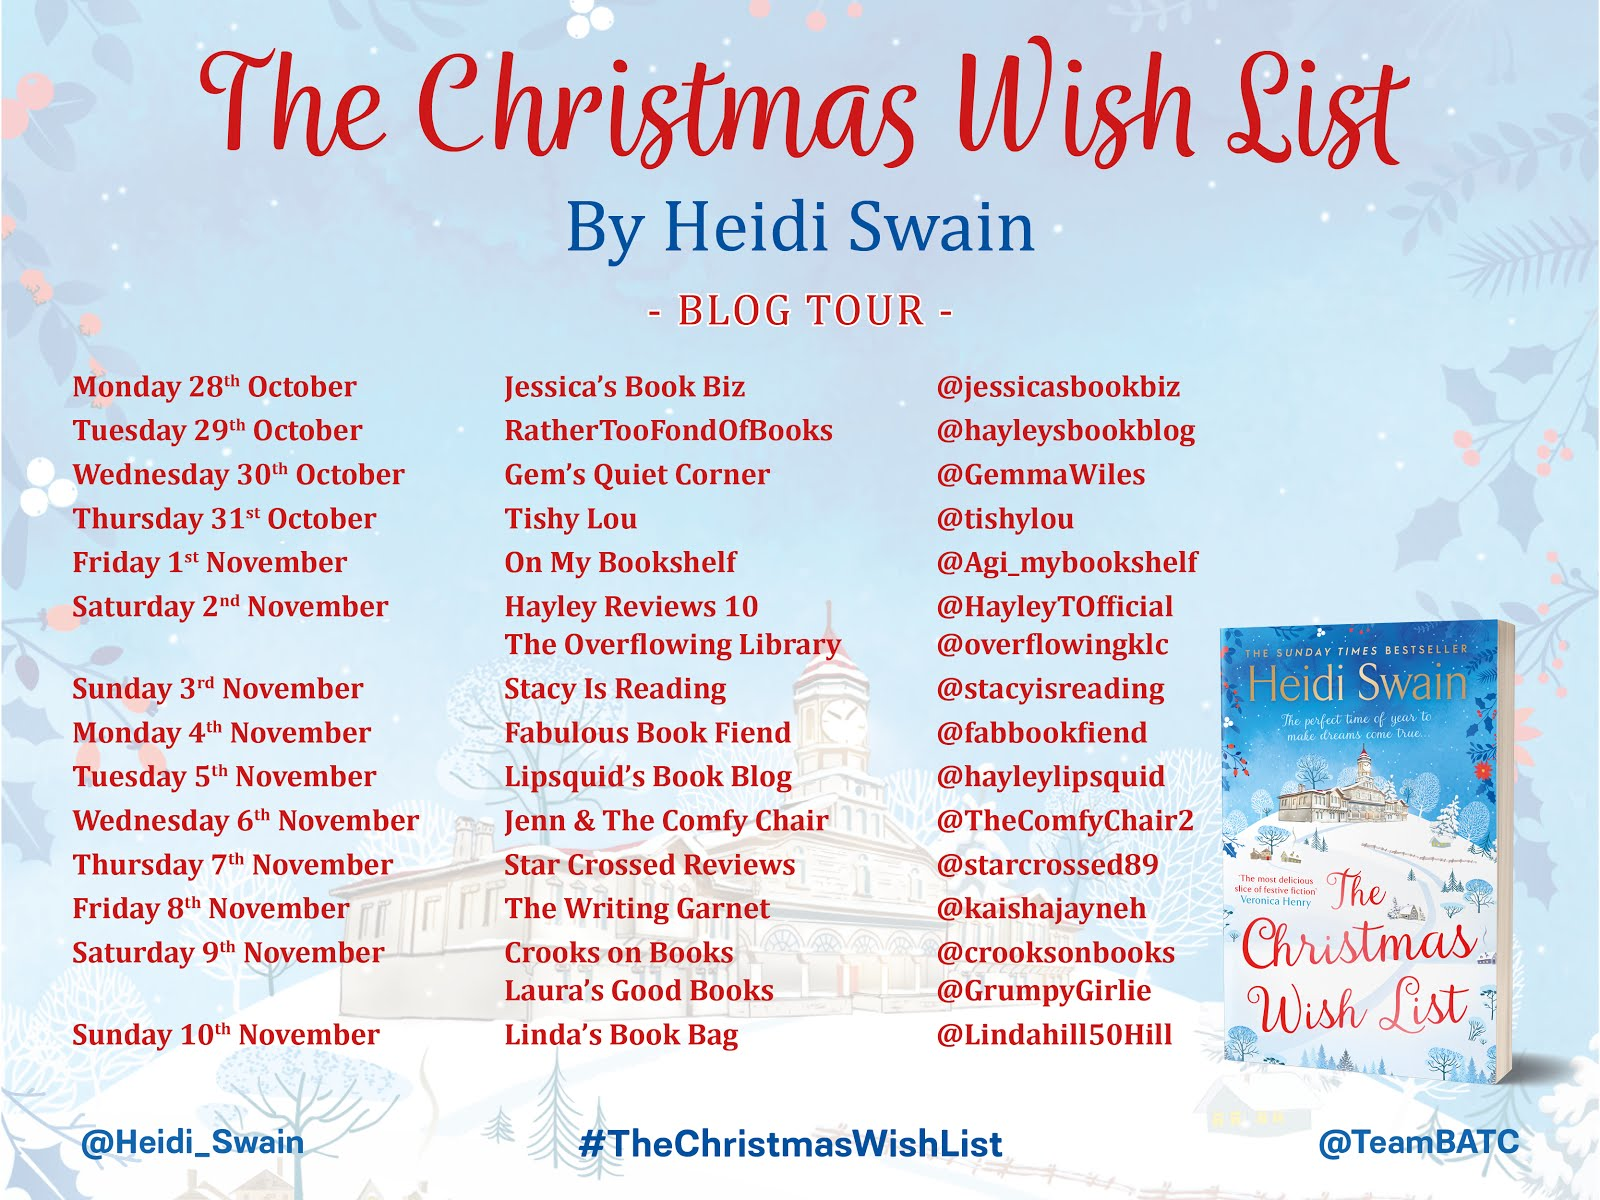 The Christmas Wish List blog tour